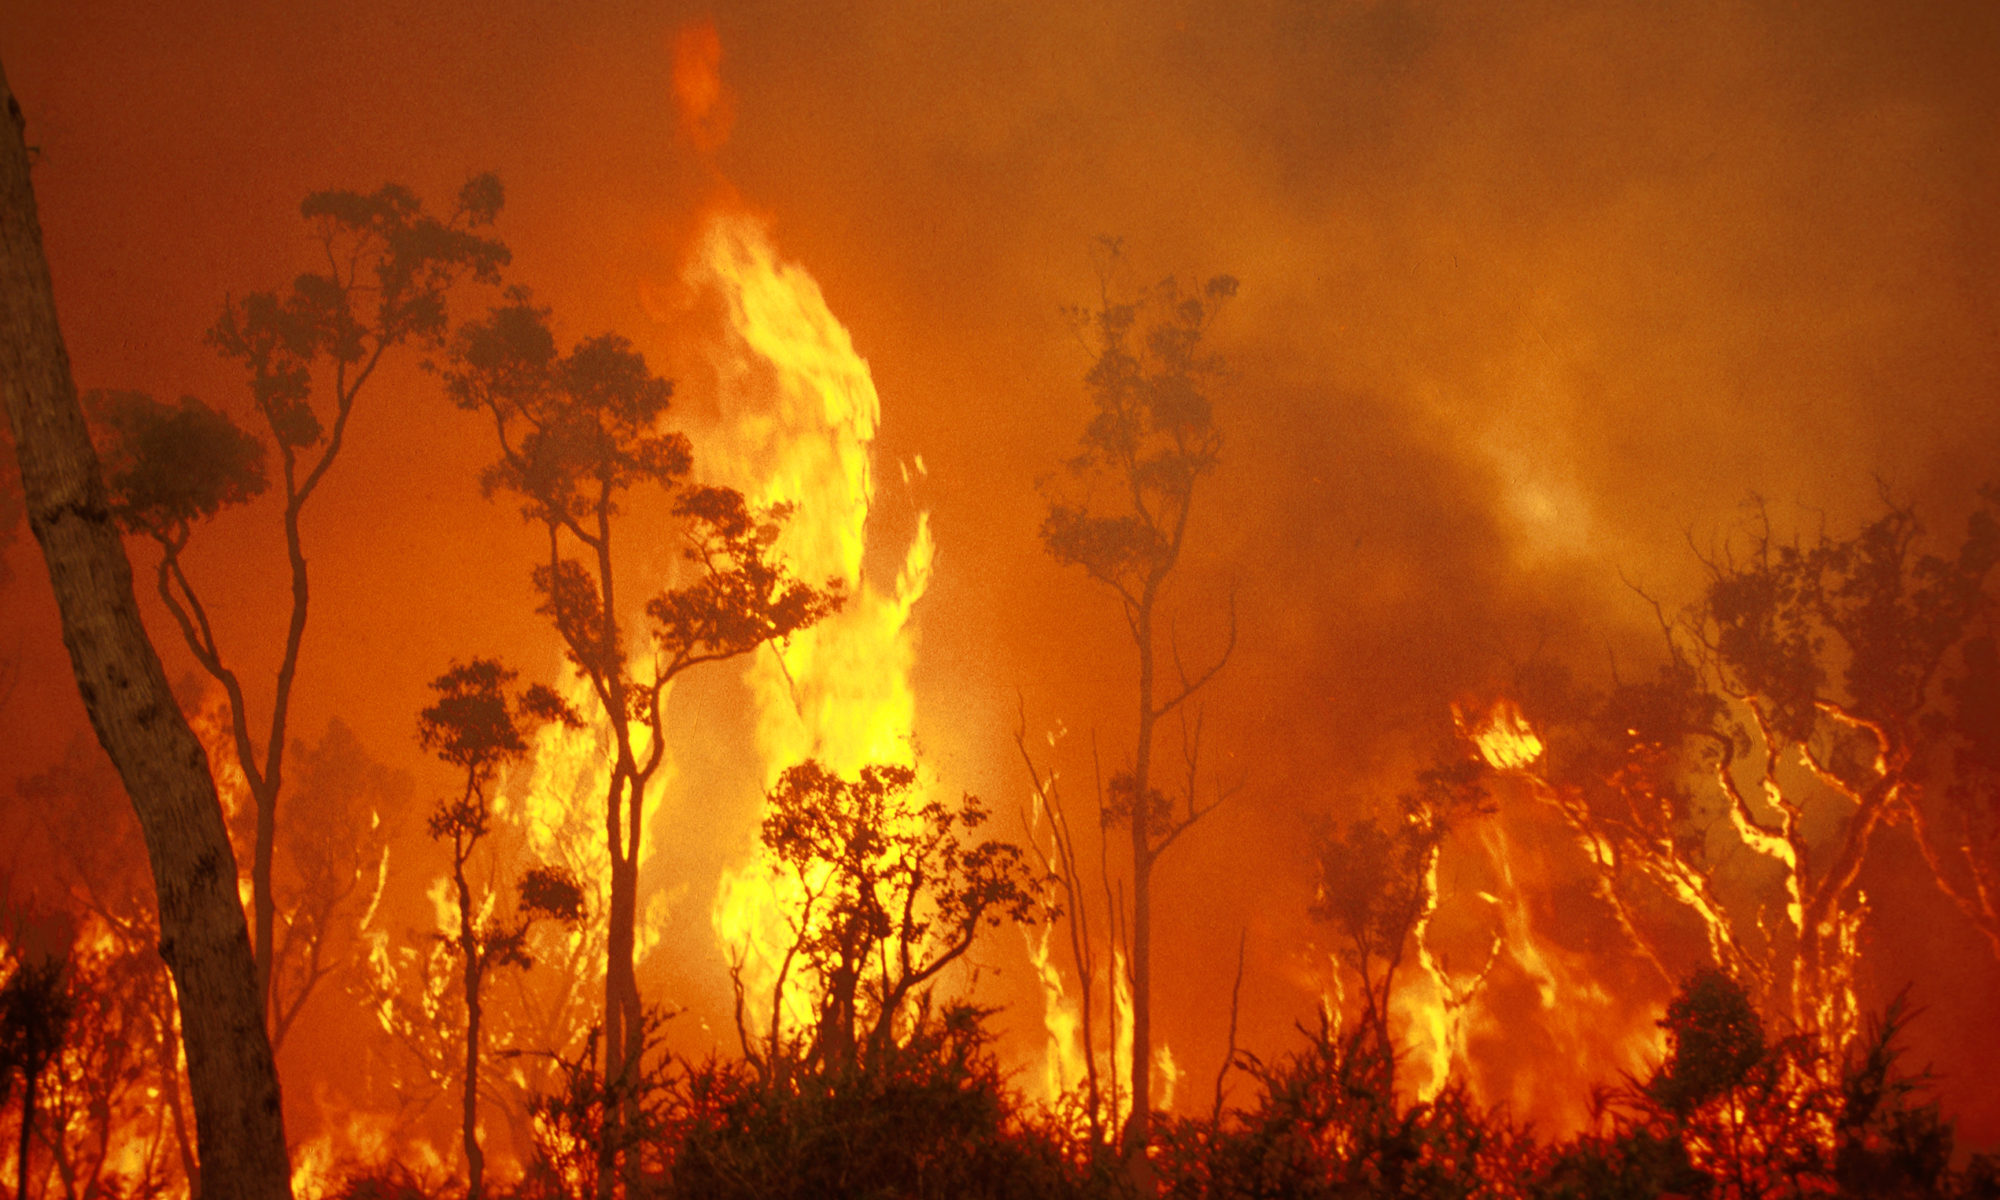 Photo of bush fire destruction in Australia